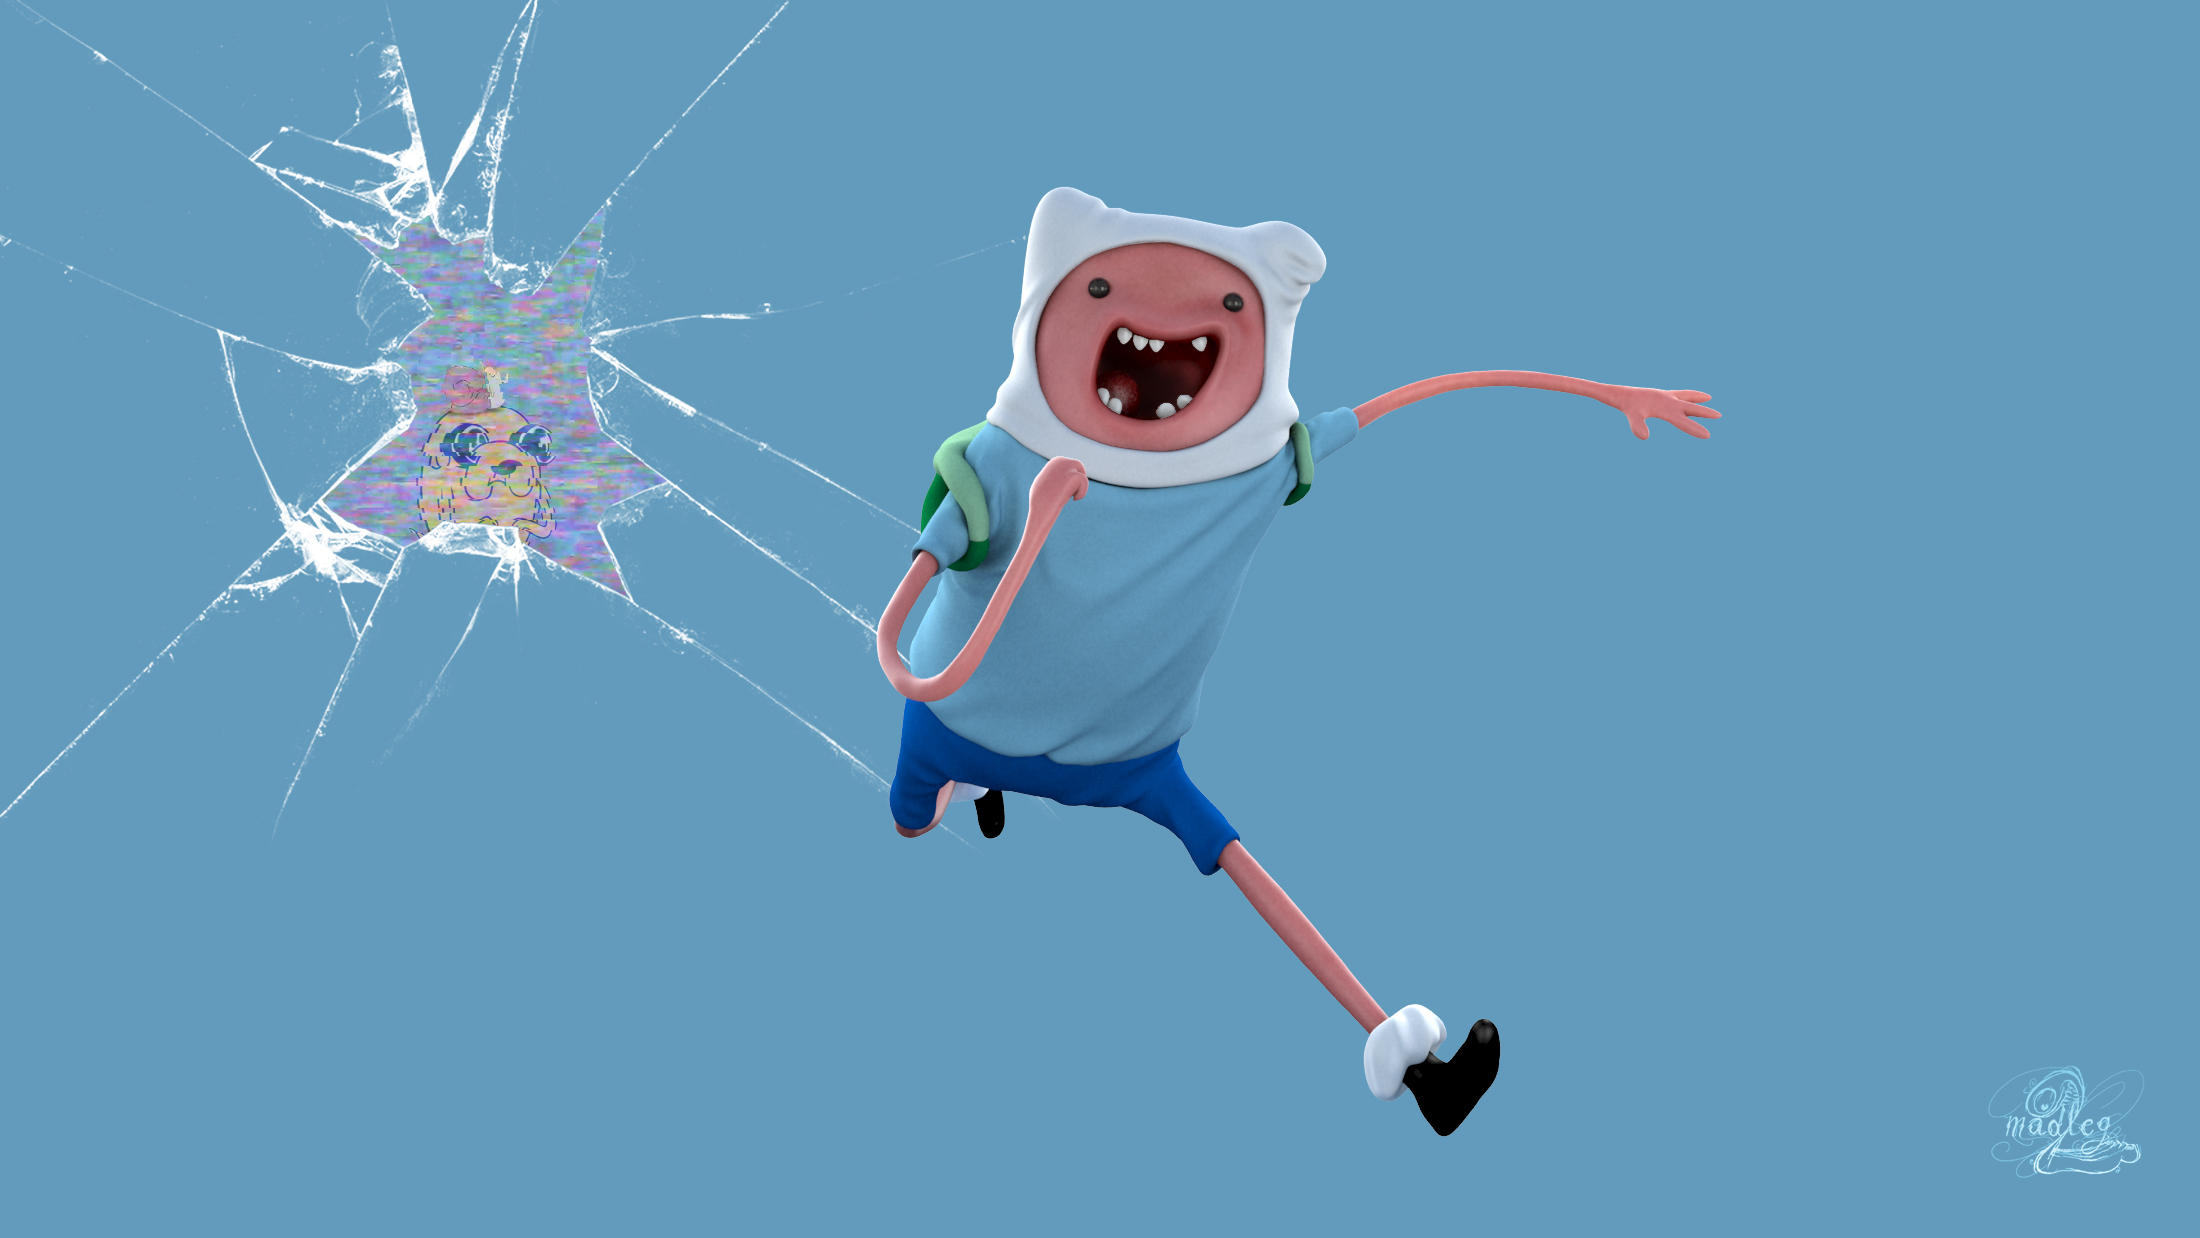 Its finn time by madlegbadleg on deviantart its finn time by madlegbadleg its finn time by madlegbadleg altavistaventures Image collections